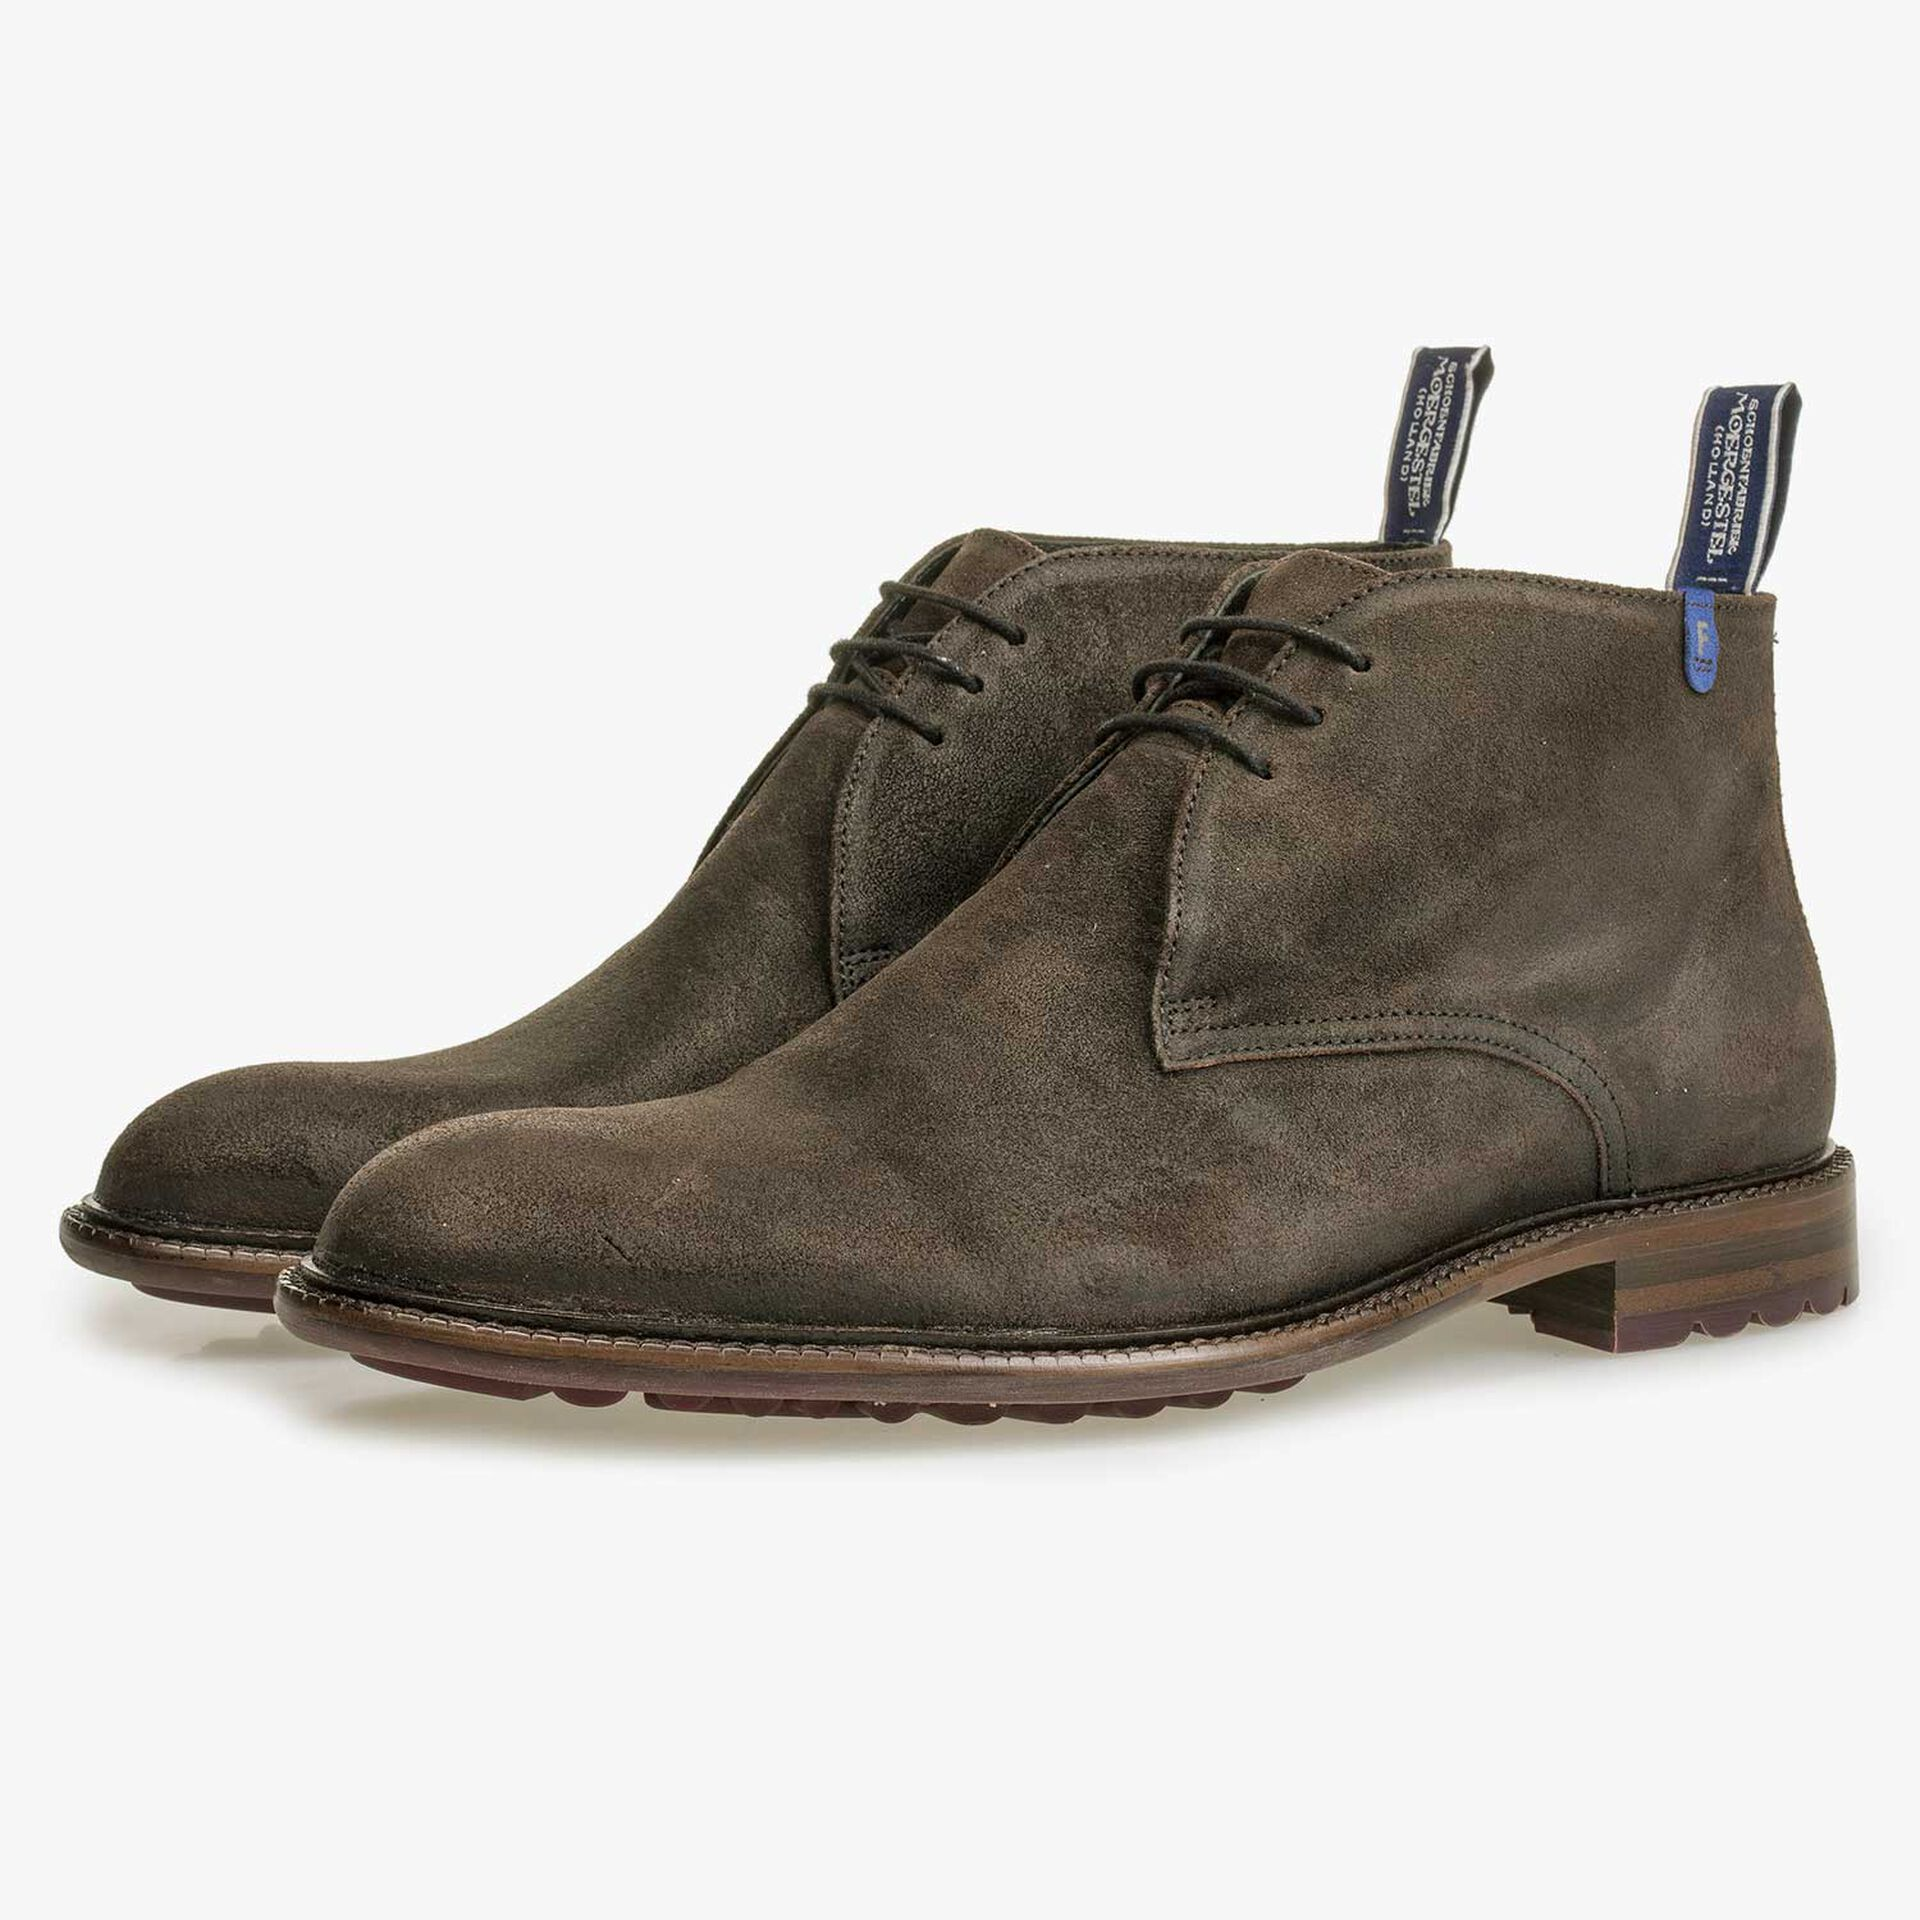 Mid-high brown suede leather lace boot